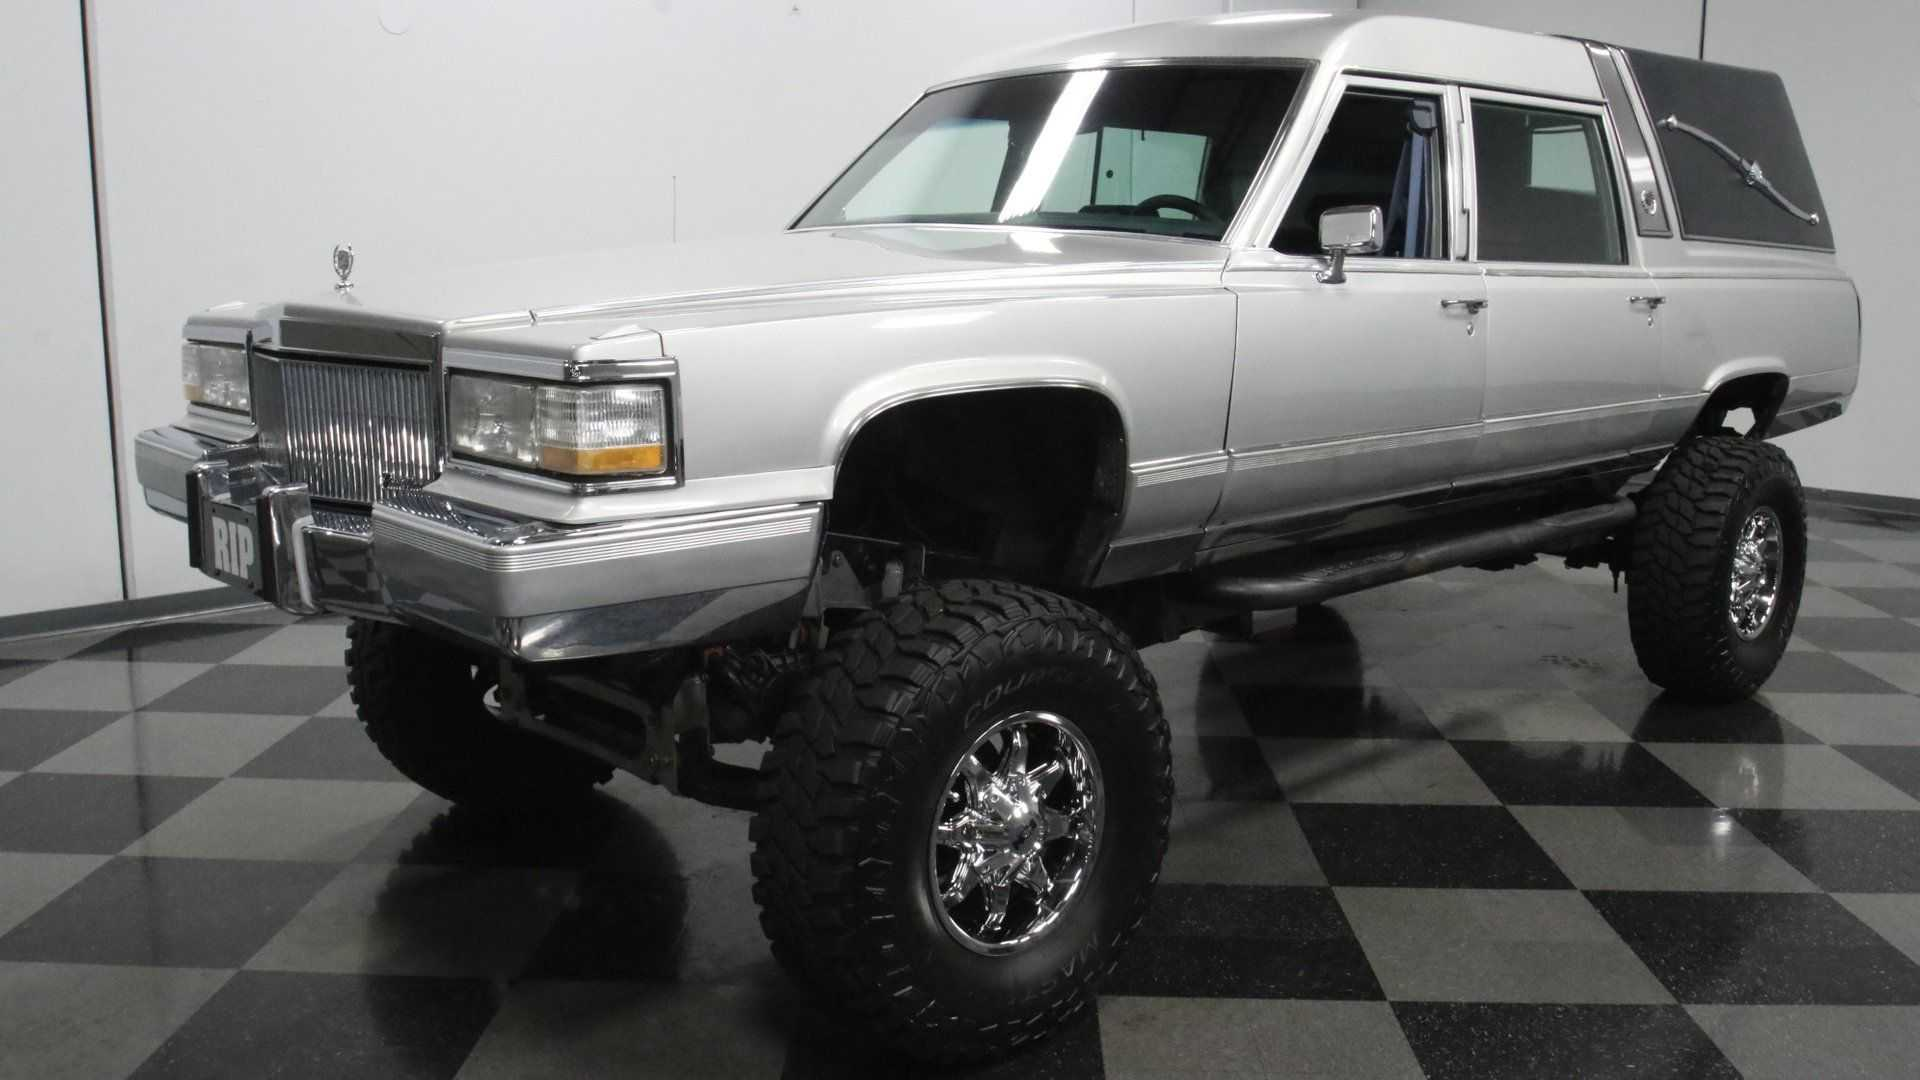 Freaky Cadillac Brougham Hearse Rides High On Chevy Truck Chassis